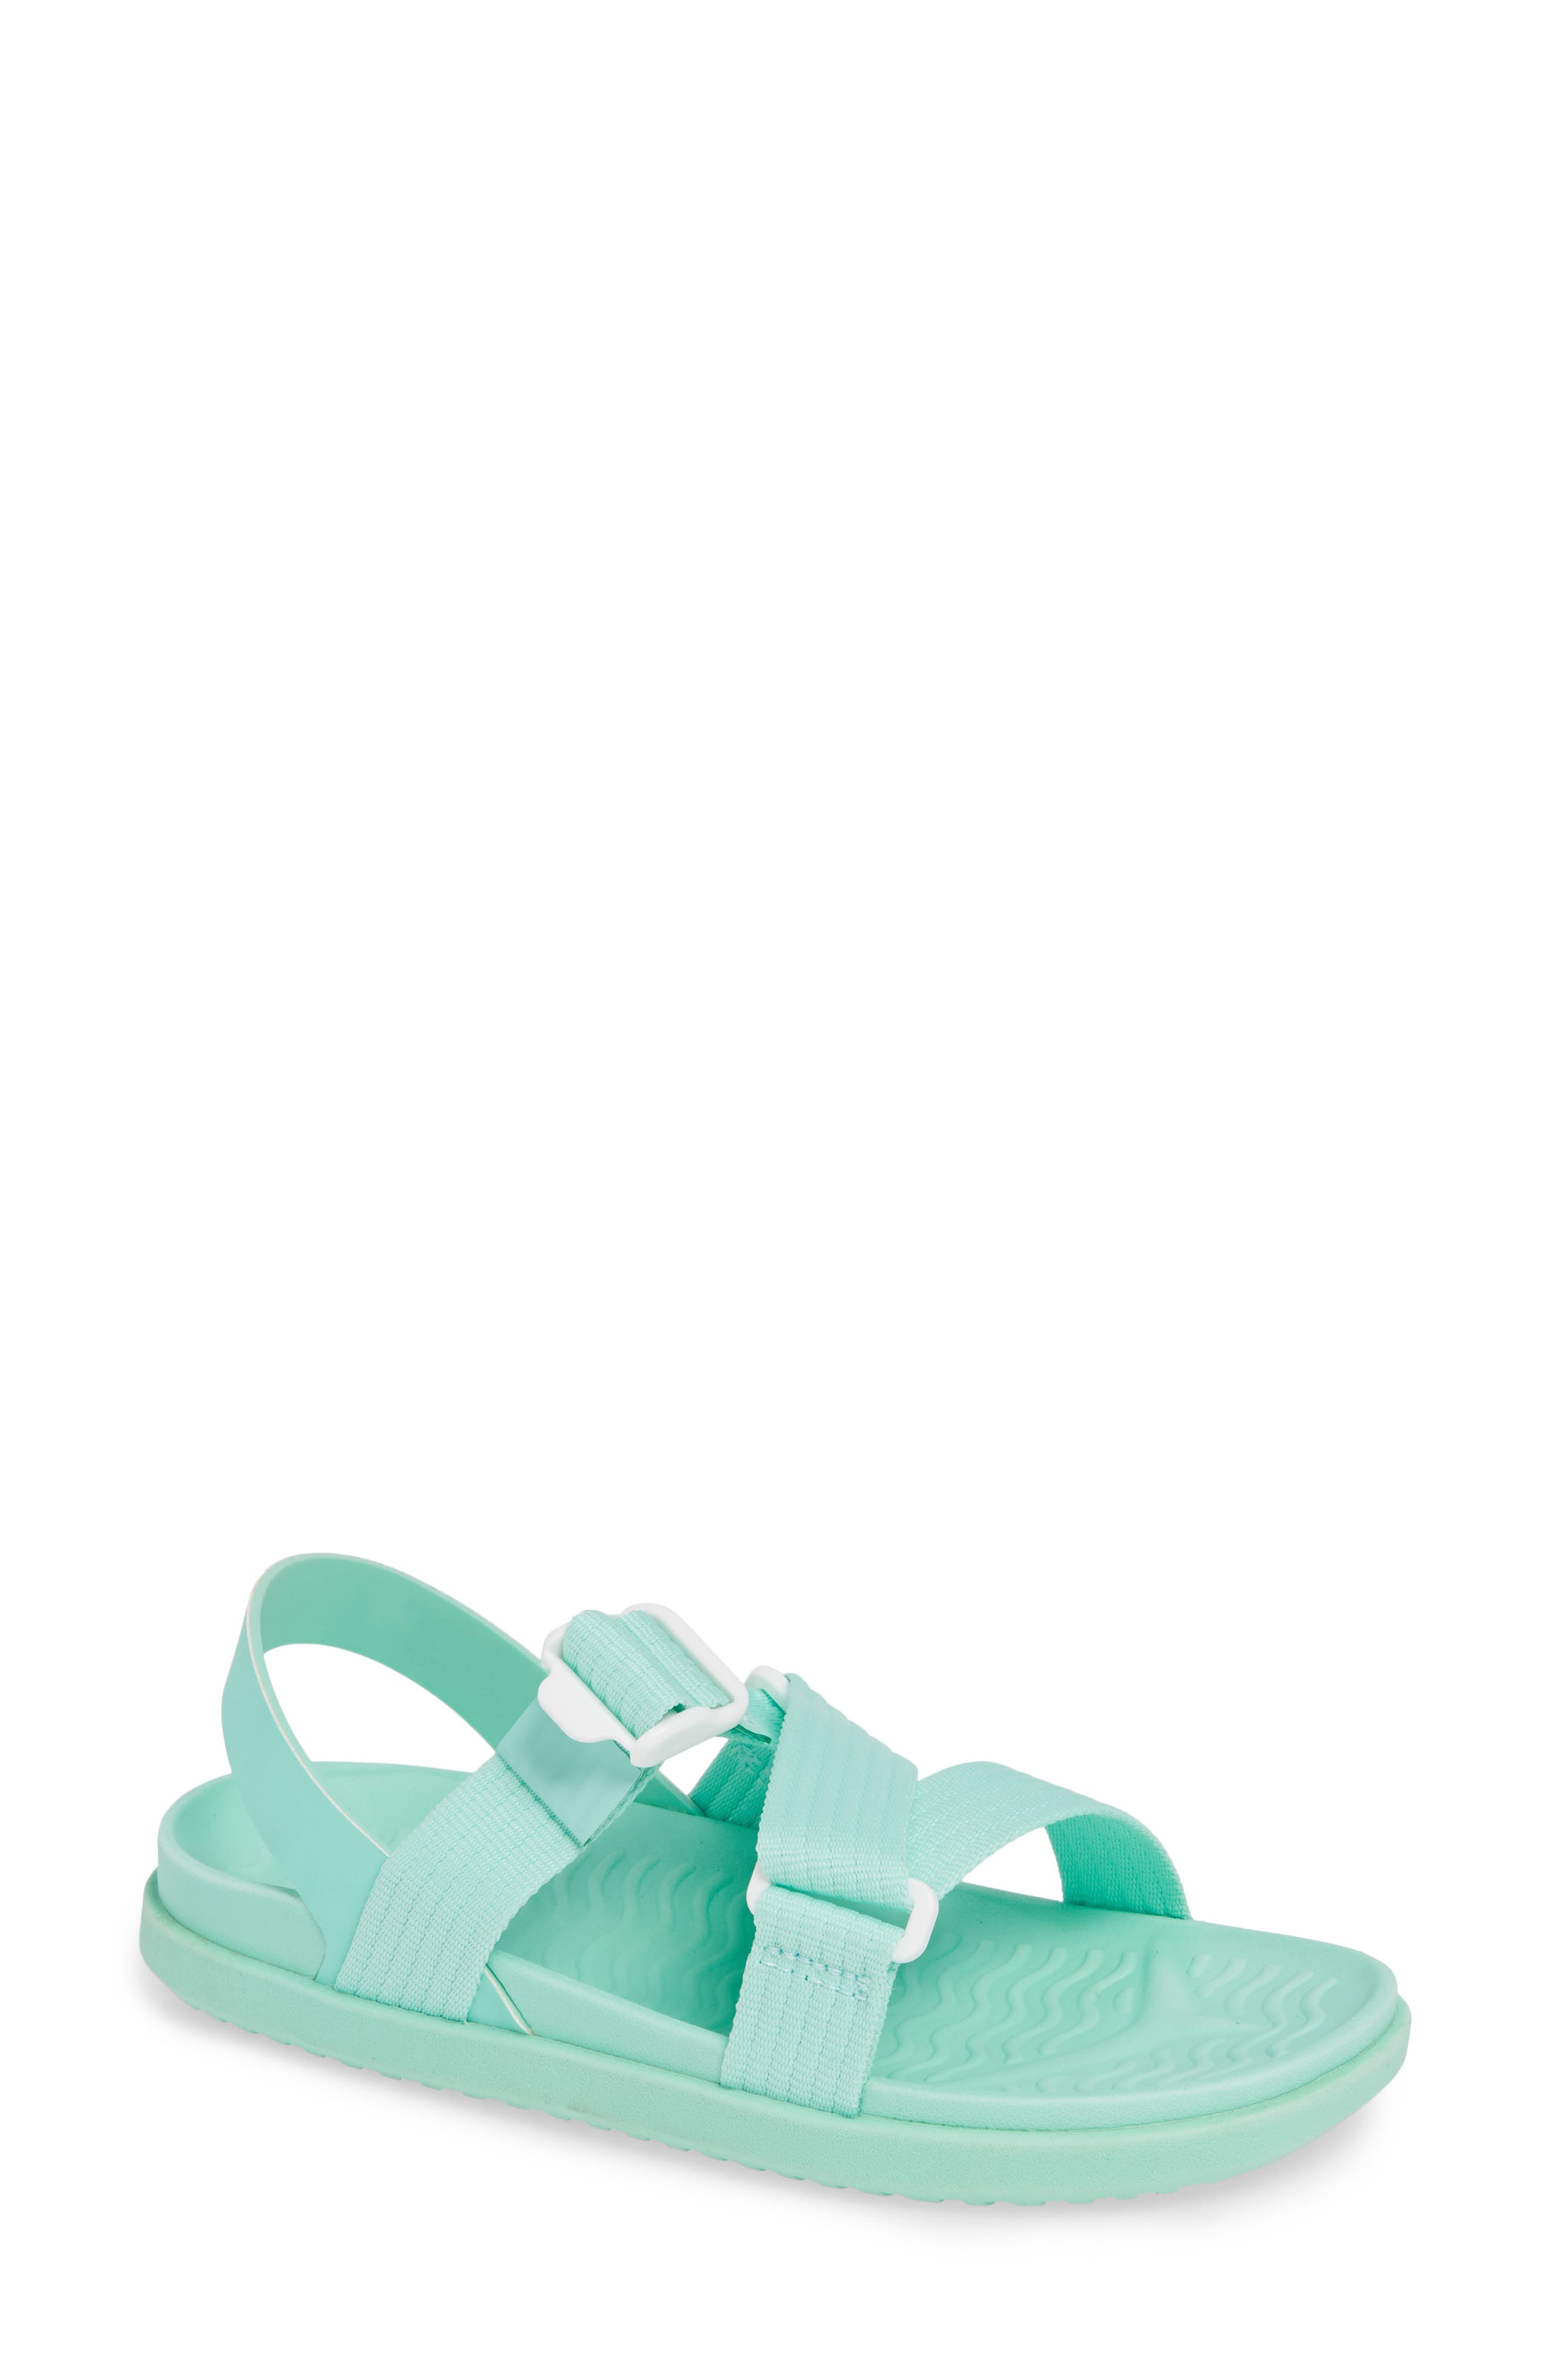 Native Shoes Zurich Vegan Sandal, Blue/green